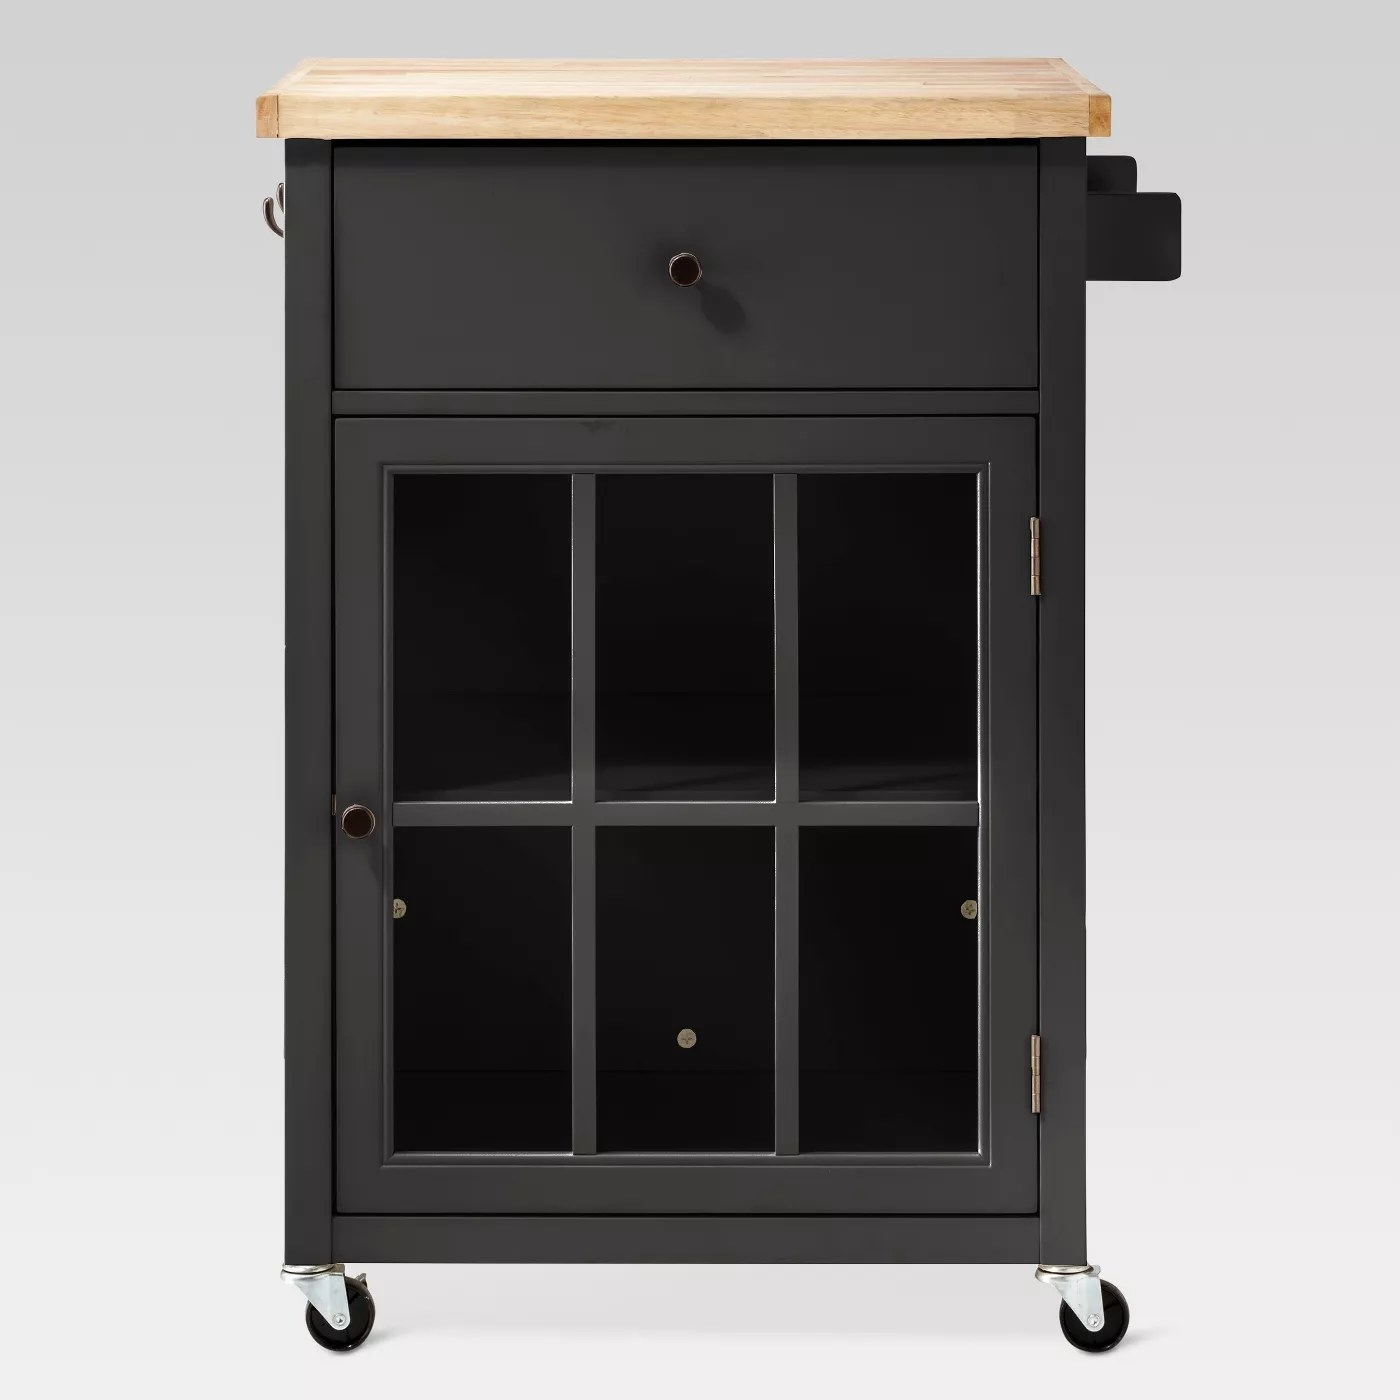 The black kitchen cart with a windowed cabinet door and casters